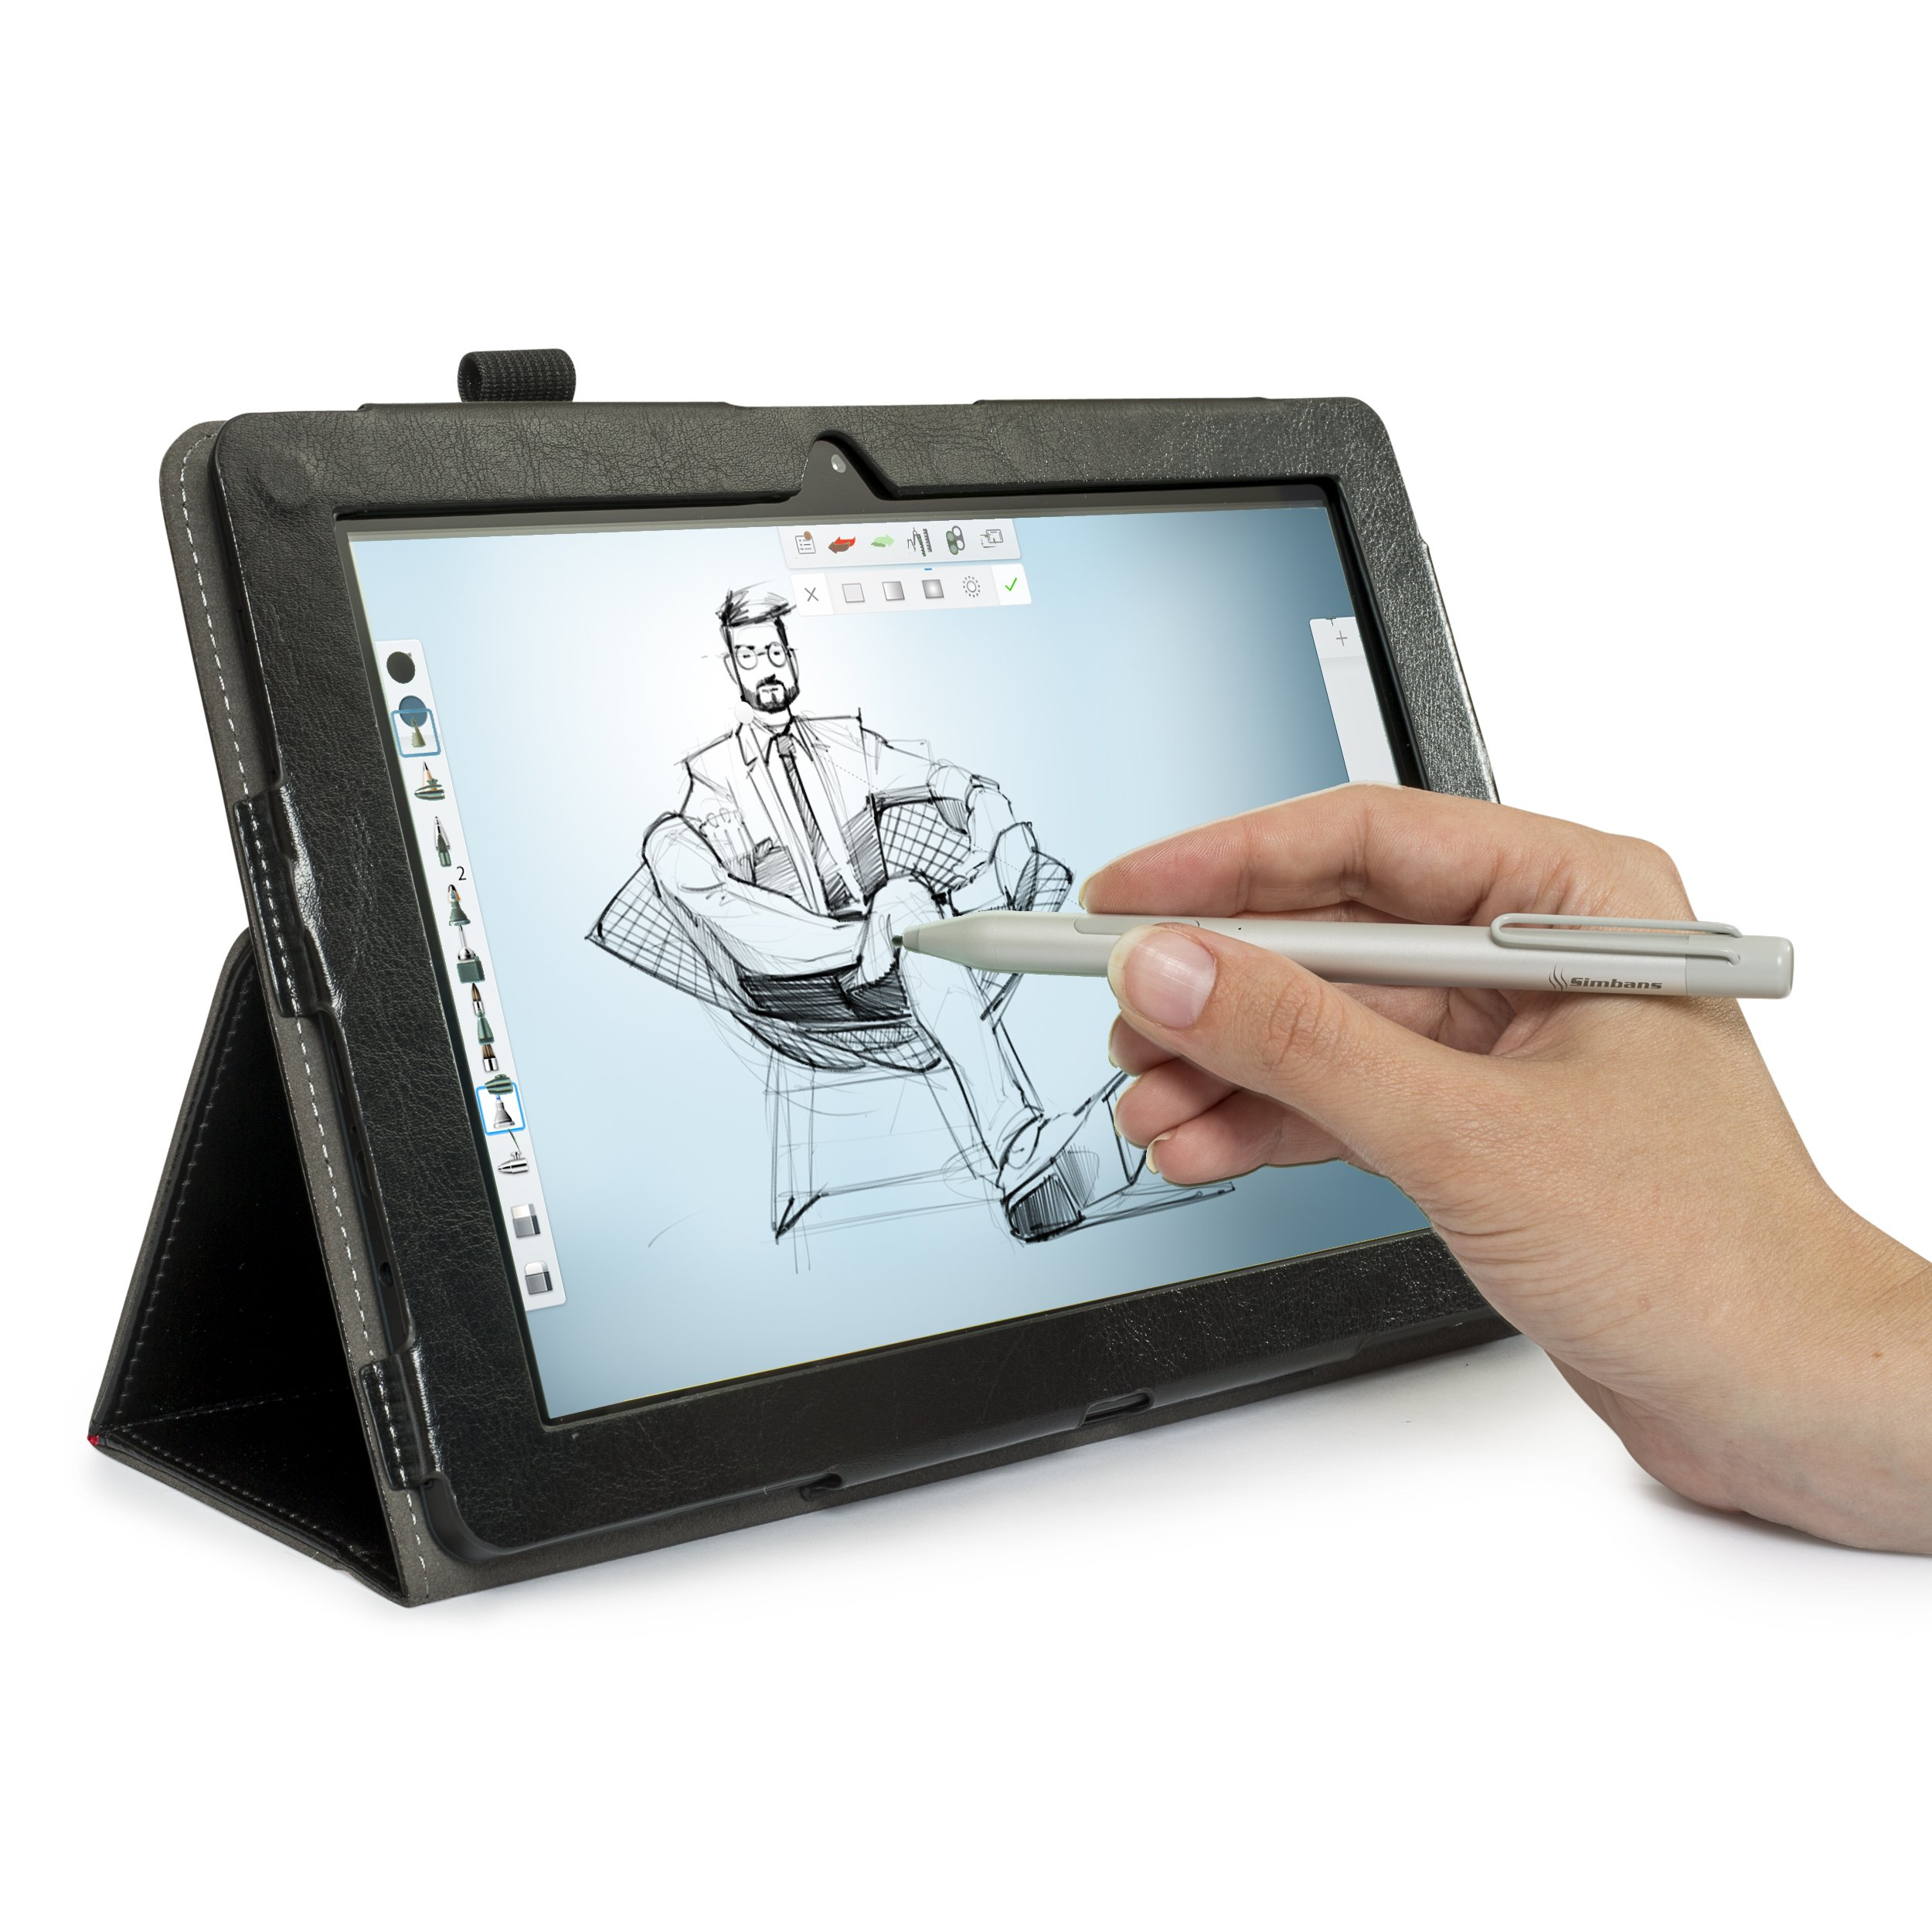 [3 Bonus items] Simbans PicassoTab 10 Inch Tablet 32GB with thin Stylus Pen for Drawing, Notes, Movies, Games, Work- 10'' Android 6.0 Marshmallow Tablet PC Computer 10.1 IPS screen HDMI, GPS, WiFi by Simbans (Image #1)